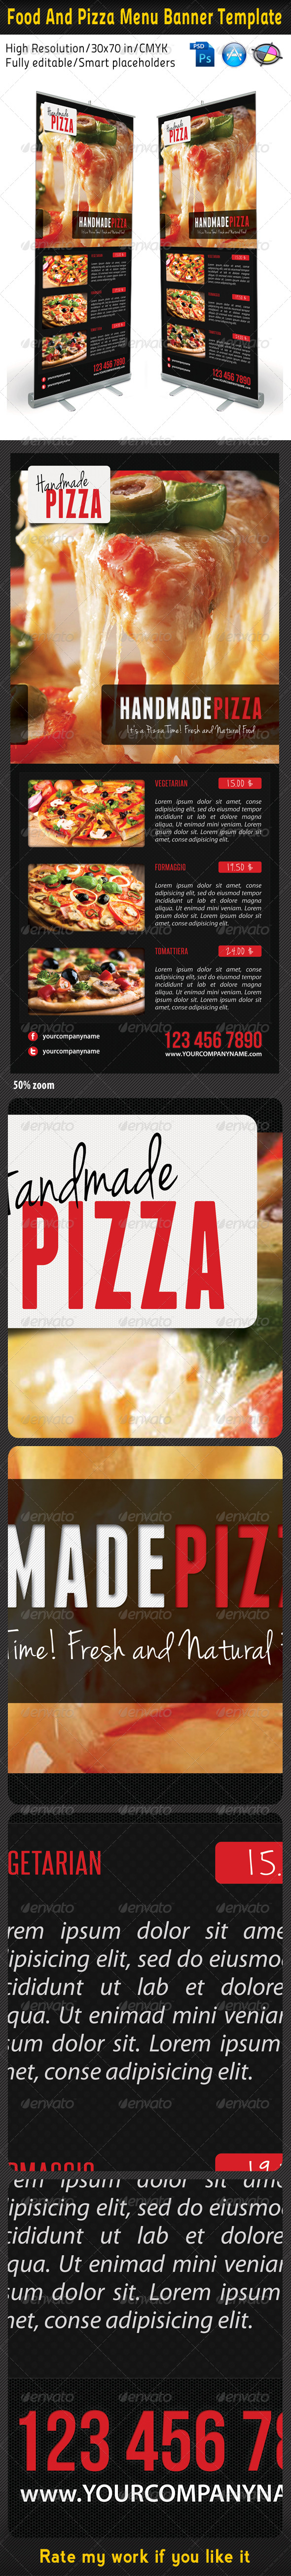 GraphicRiver Food And Pizza Menu Banner Template 02 5888169